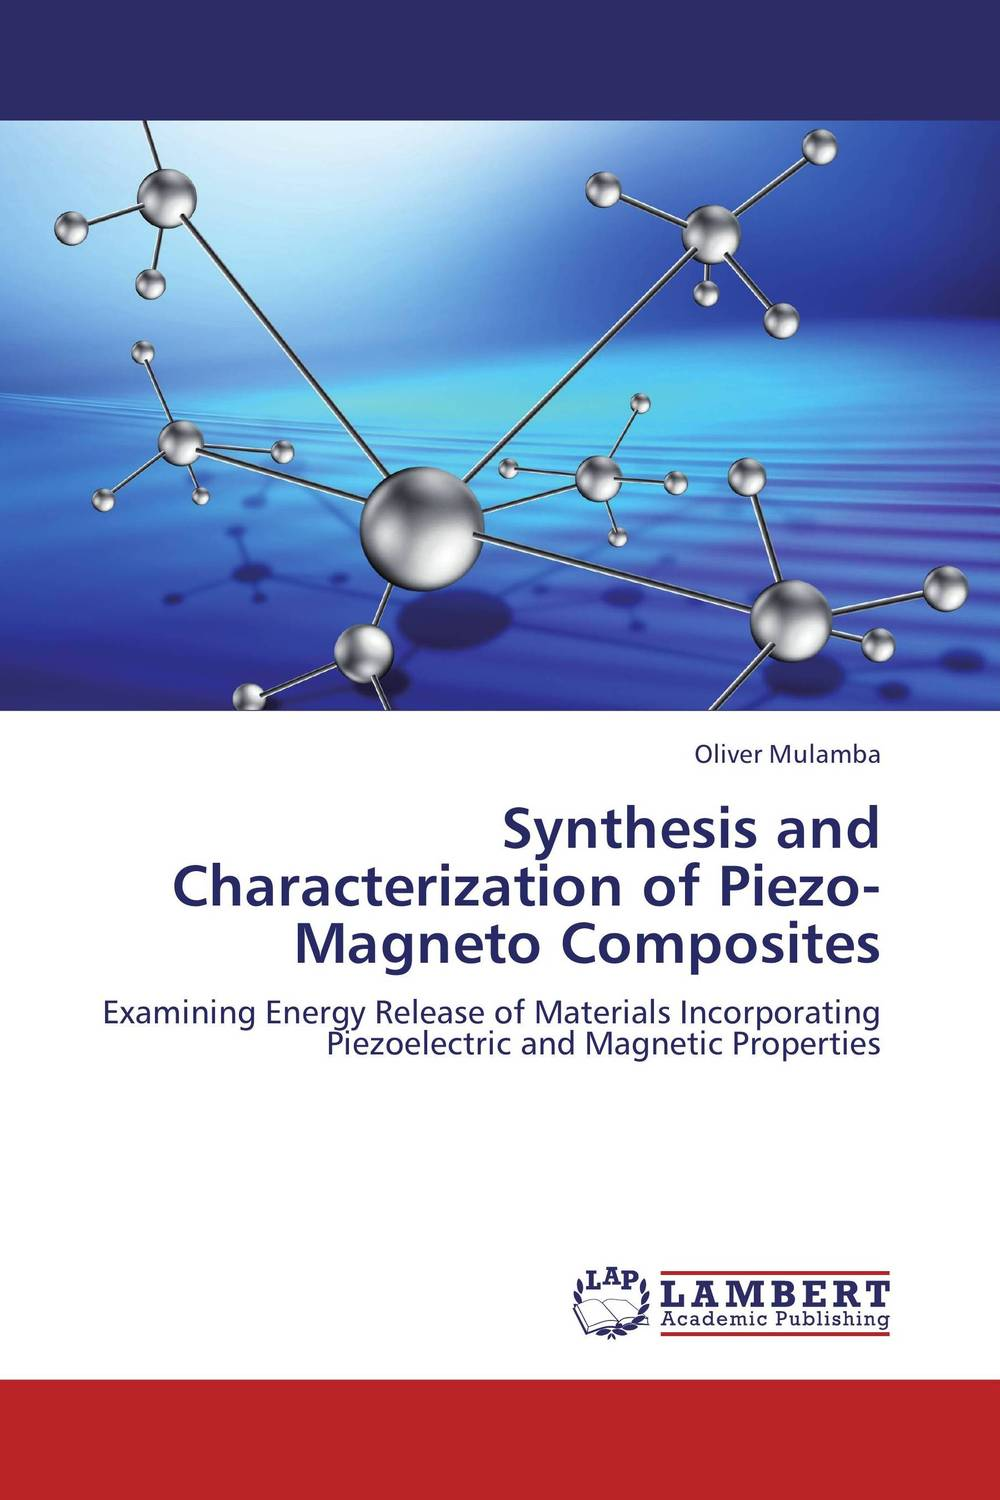 Synthesis and Characterization of Piezo-Magneto Composites solar energy modelling and assessing photovoltaic energy